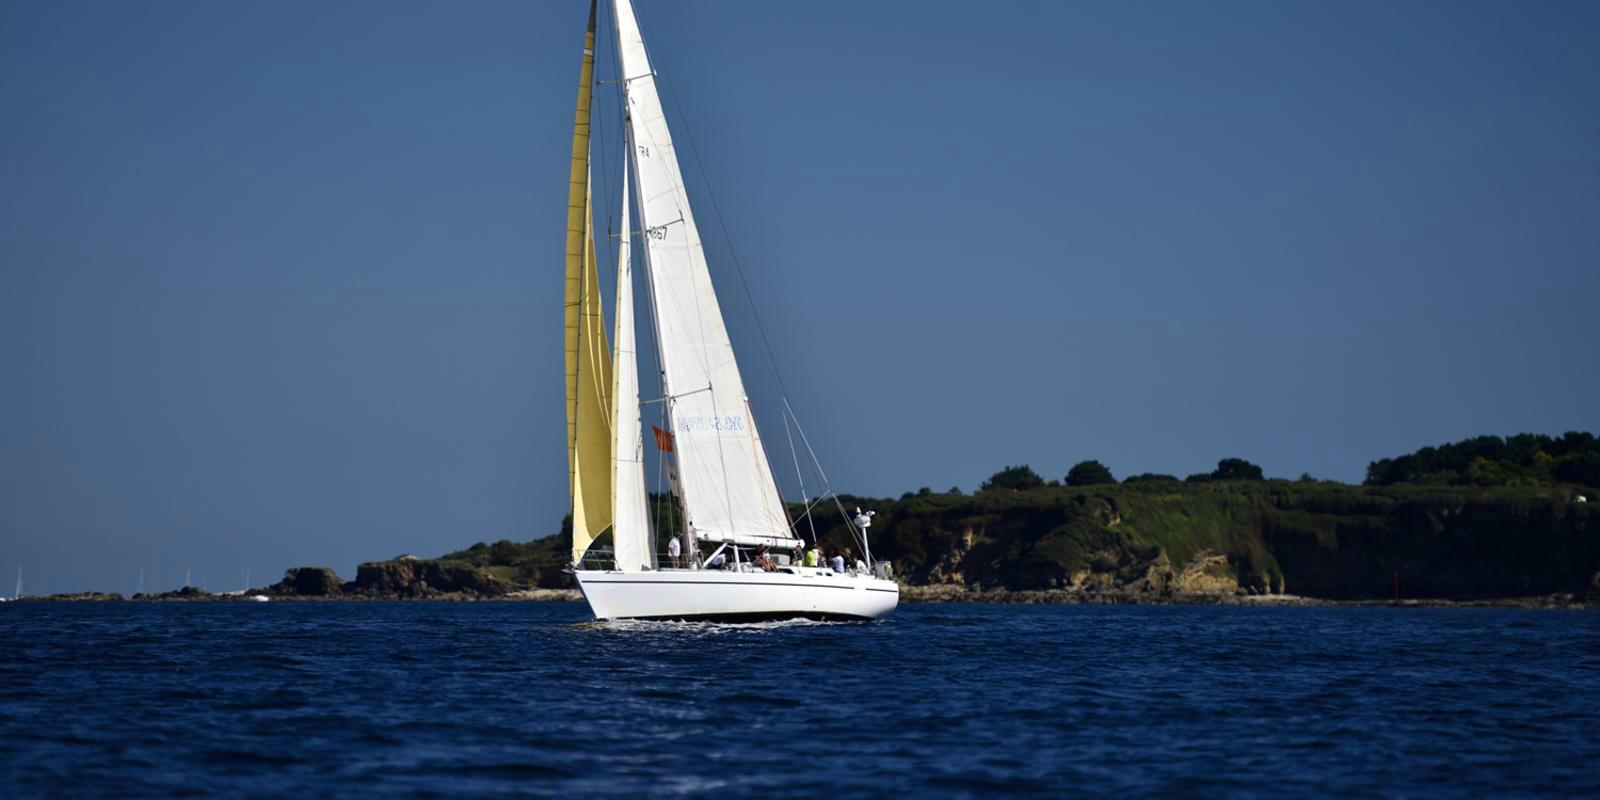 Sailing course, discovery cruise in South Brittany - All included